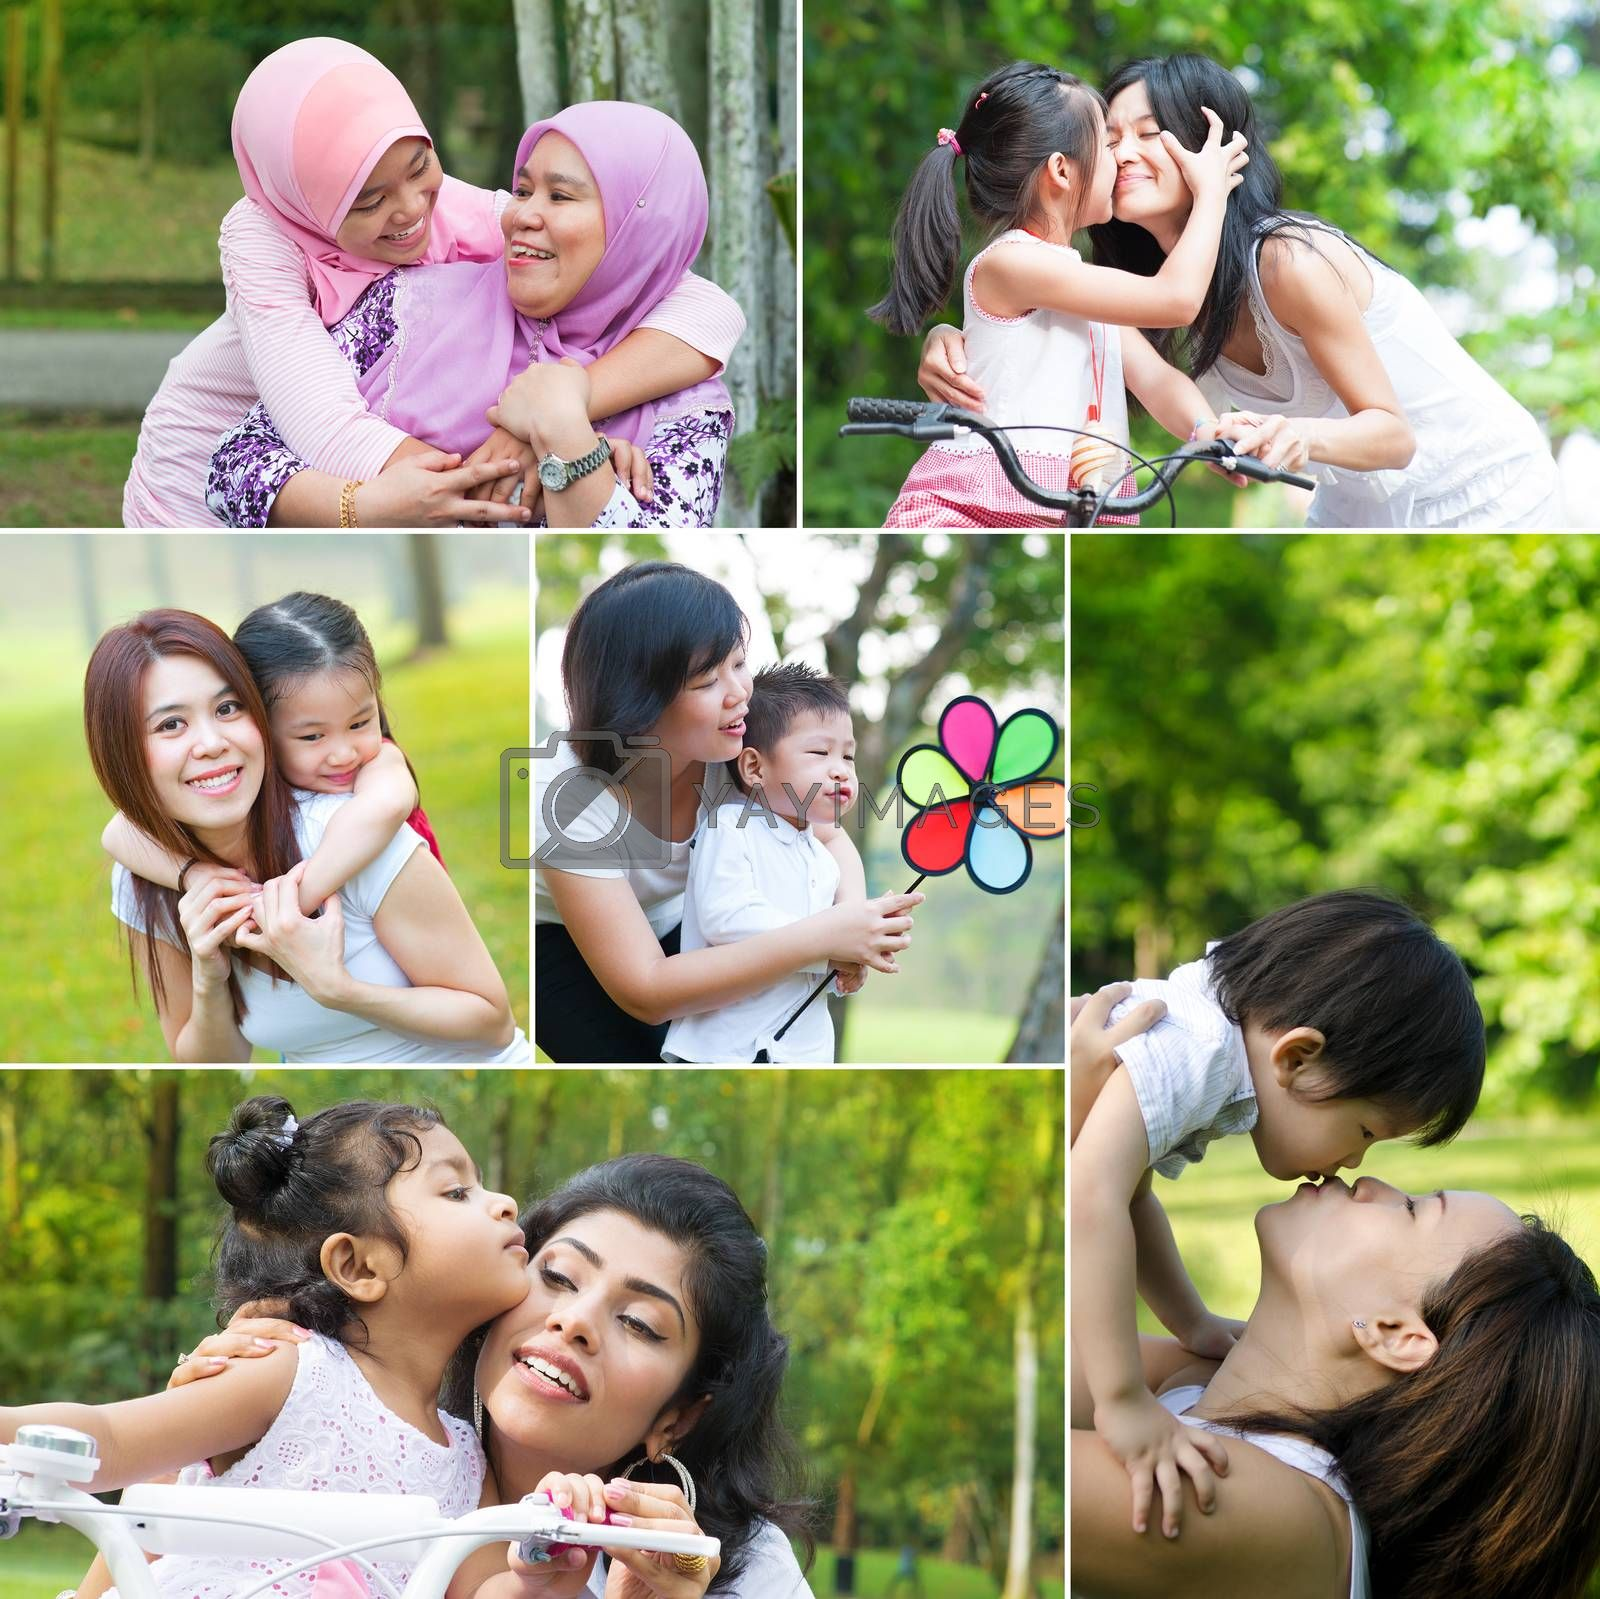 Collage photo mothers day concept. Mixed race family generations having fun at outdoor park. All photos belong to me.